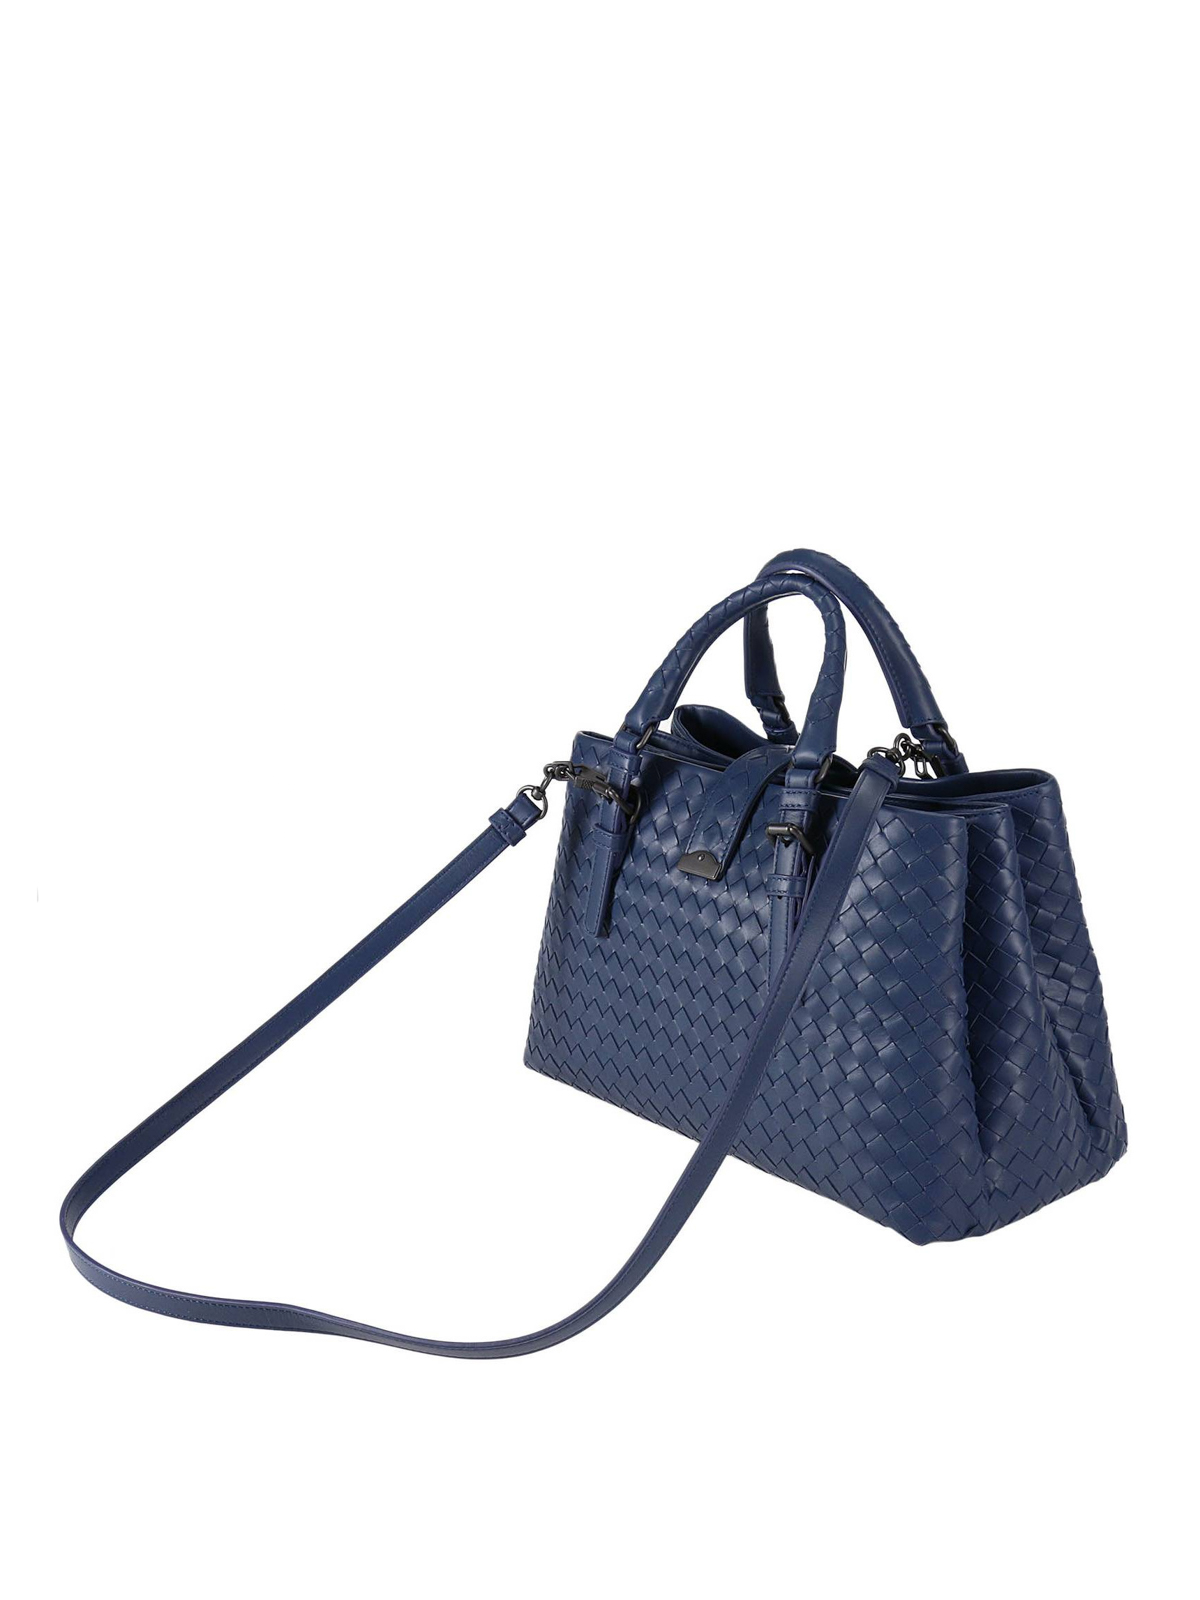 iKRIX BOTTEGA VENETA  cross body bags - Roma Intrecciato mini bag 9d2cdef1f912f